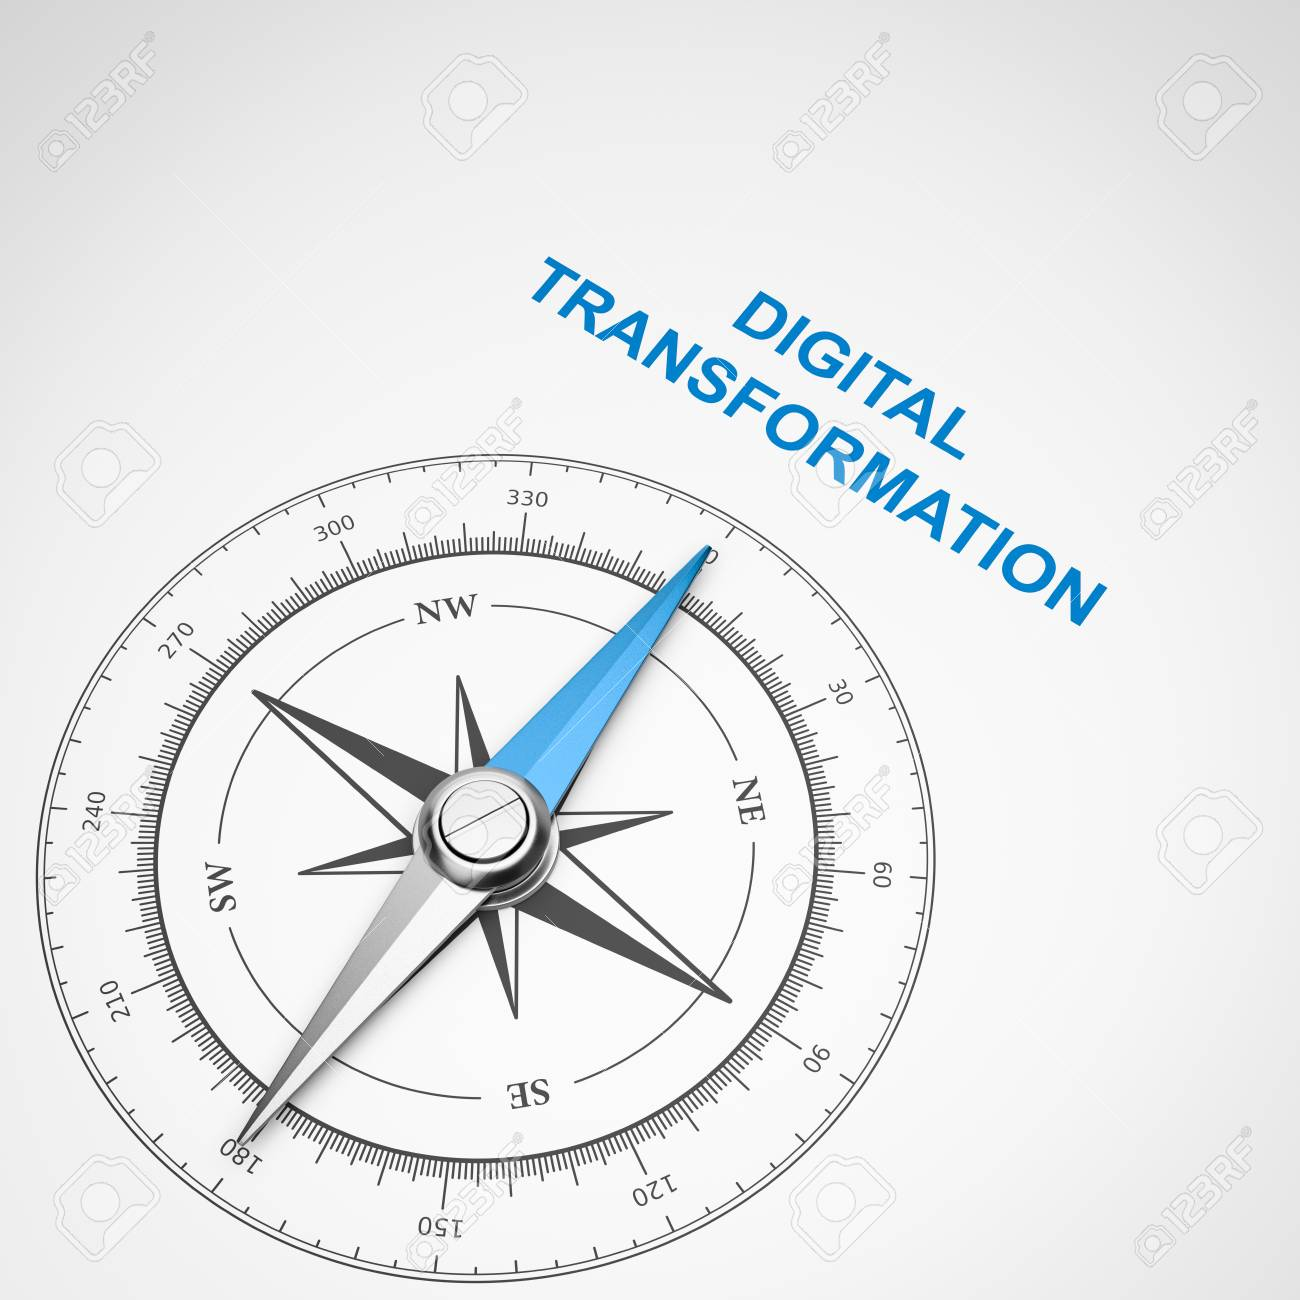 Magnetic Compass With Needle Pointing Blue Digital Transformation 1300x1300